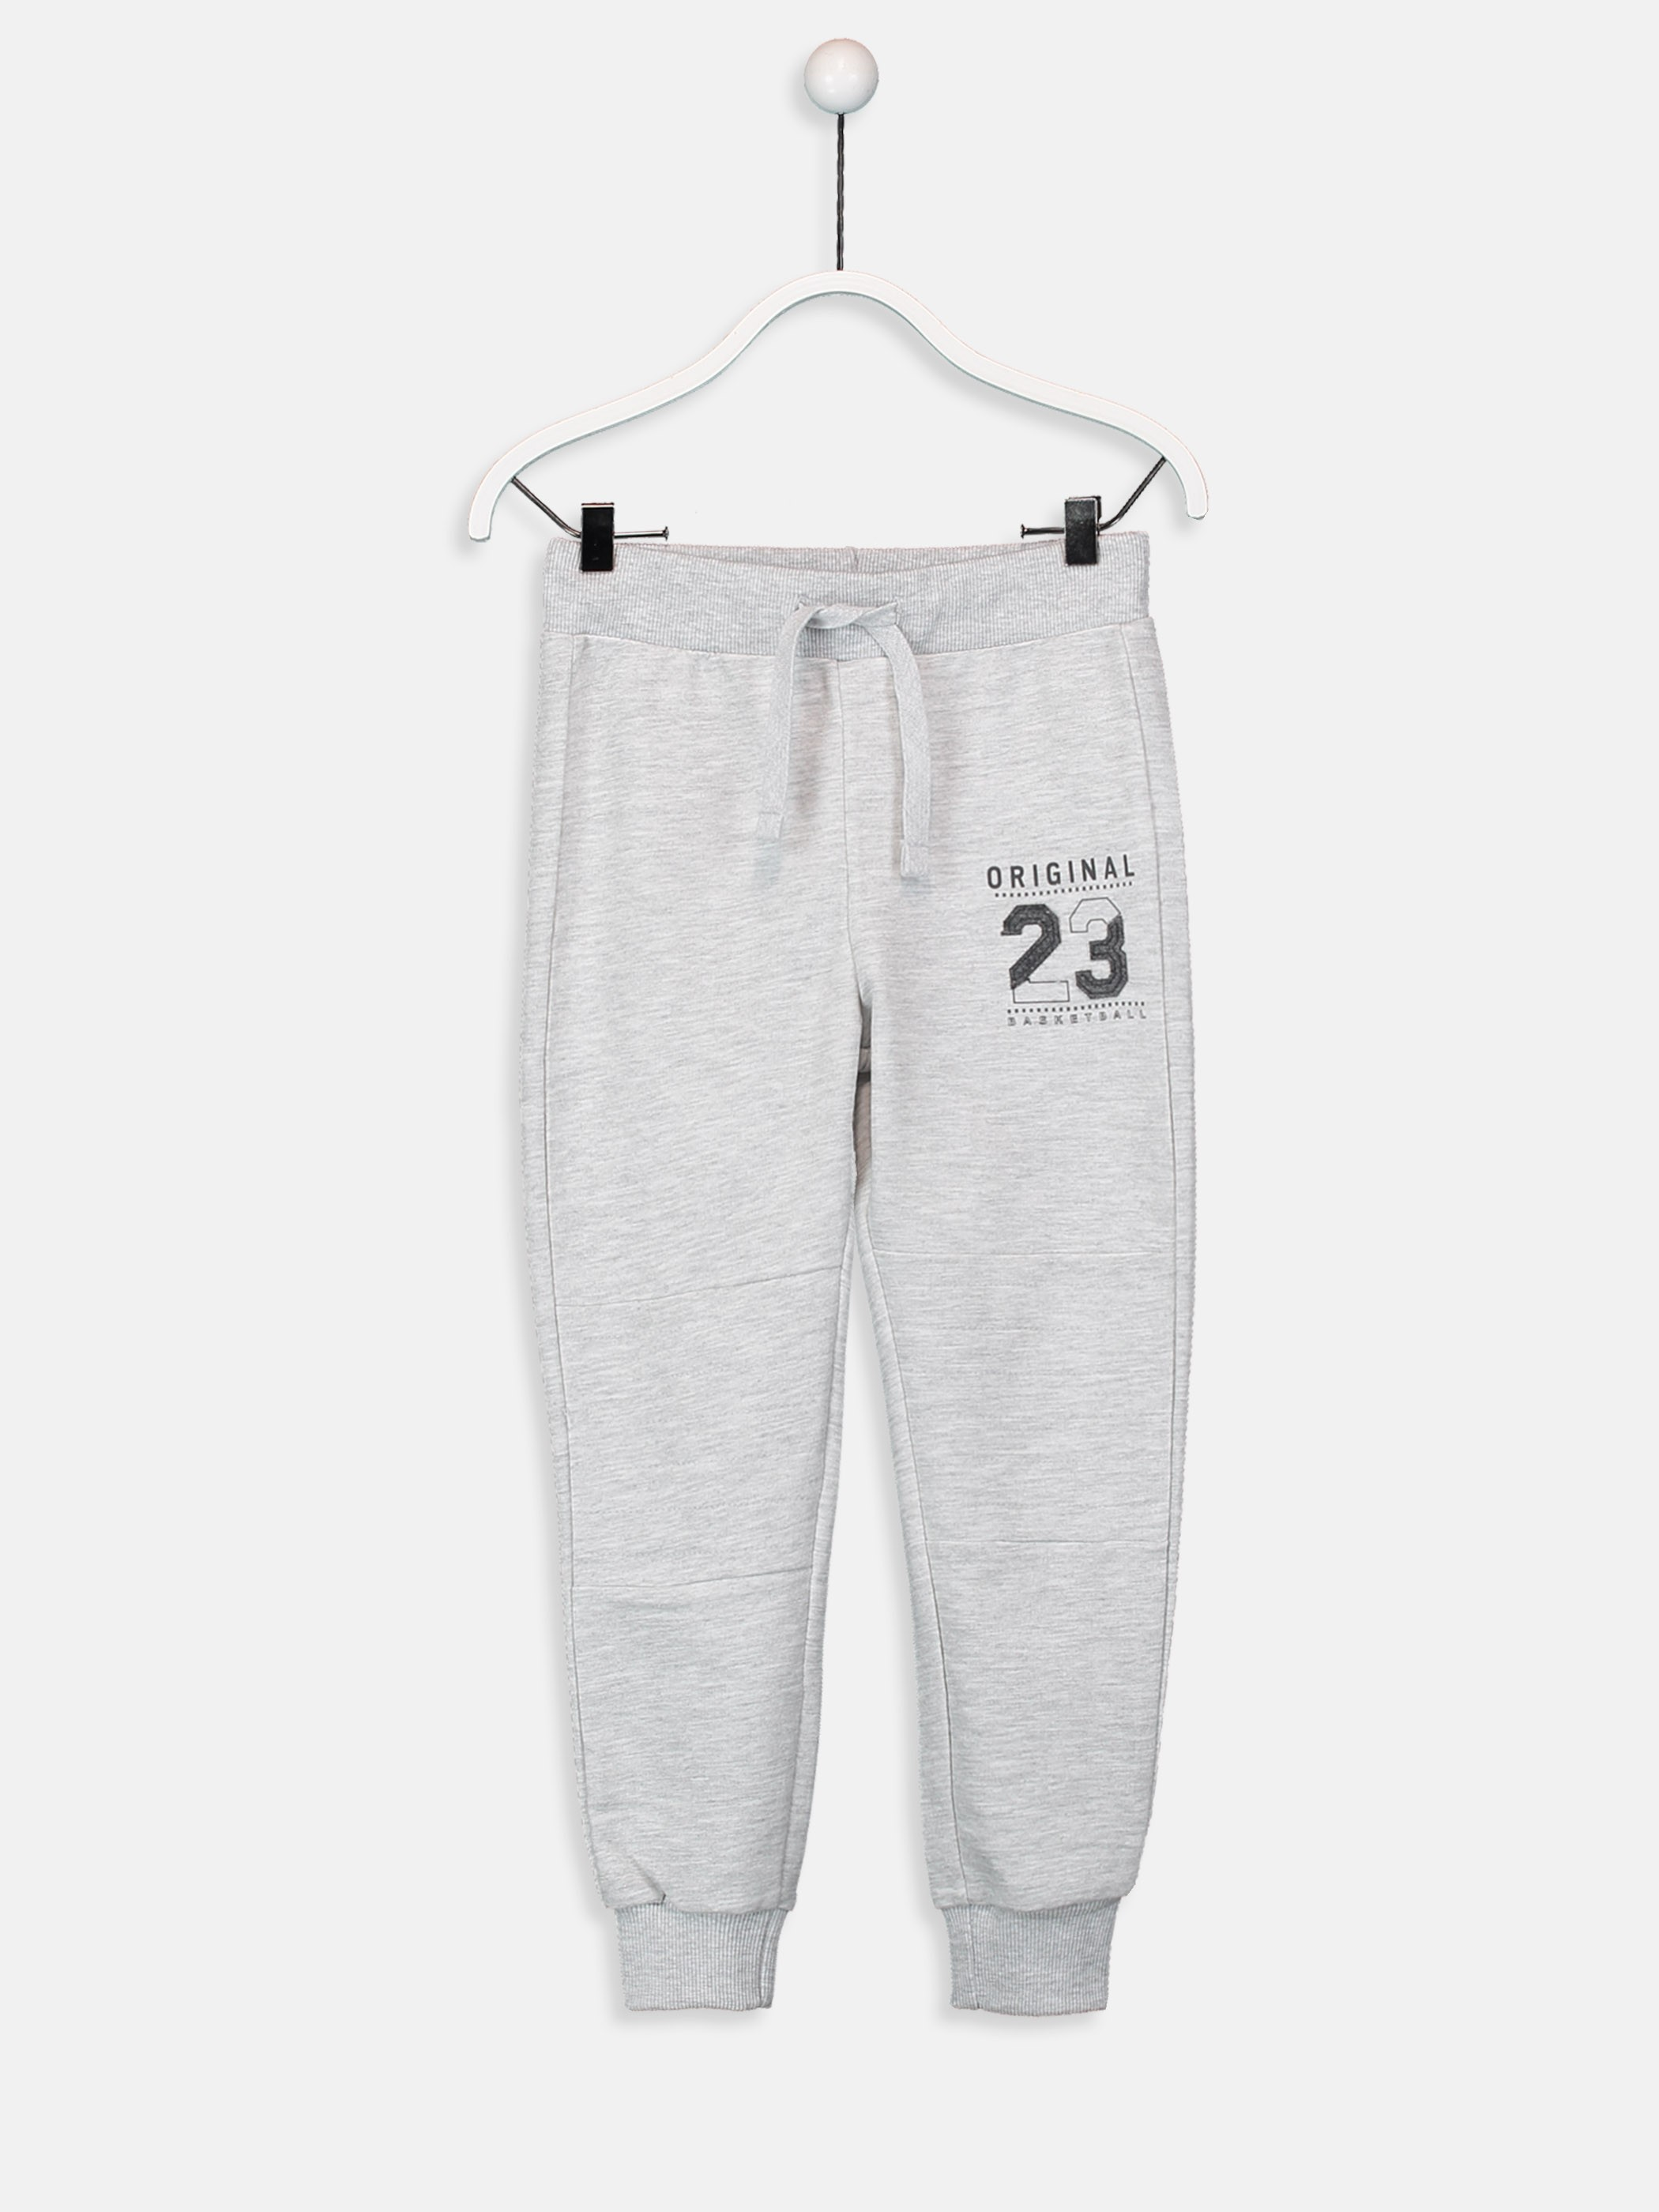 GREY - Sweatpants - 9W2605Z4